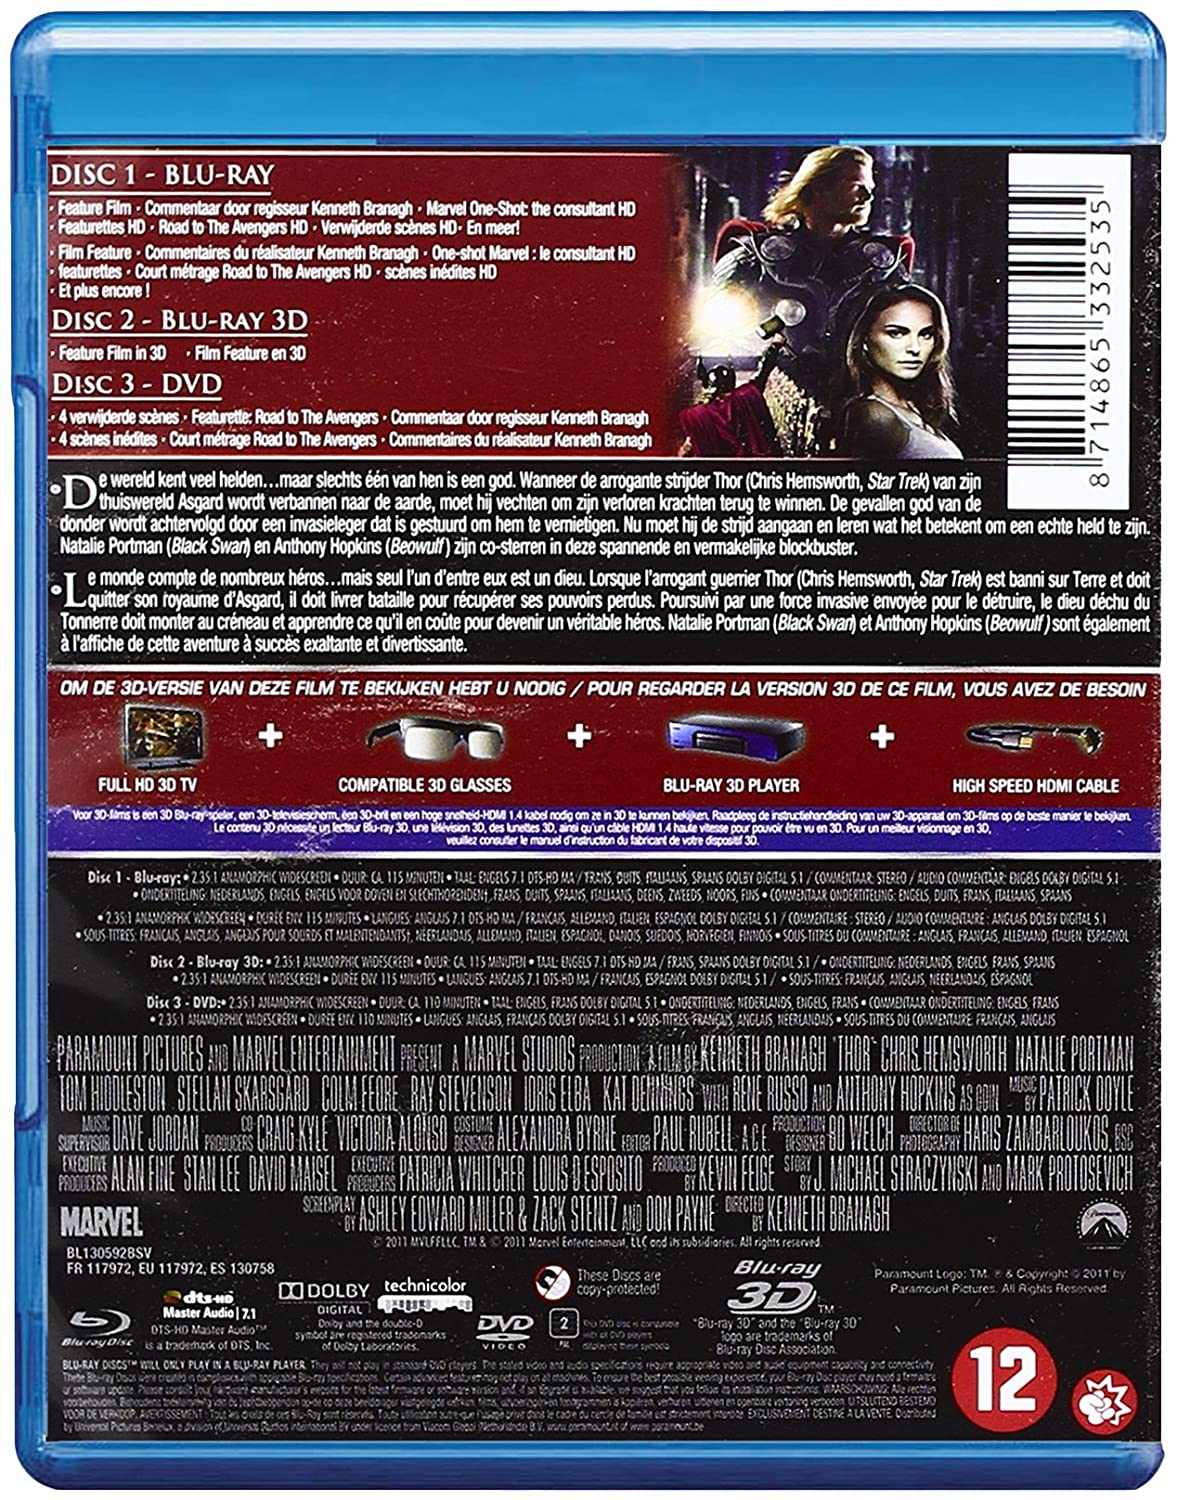 Thor - Combo Blu-ray 3D + Blu-ray 2D + DVD: Amazon.es: Cine y Series TV